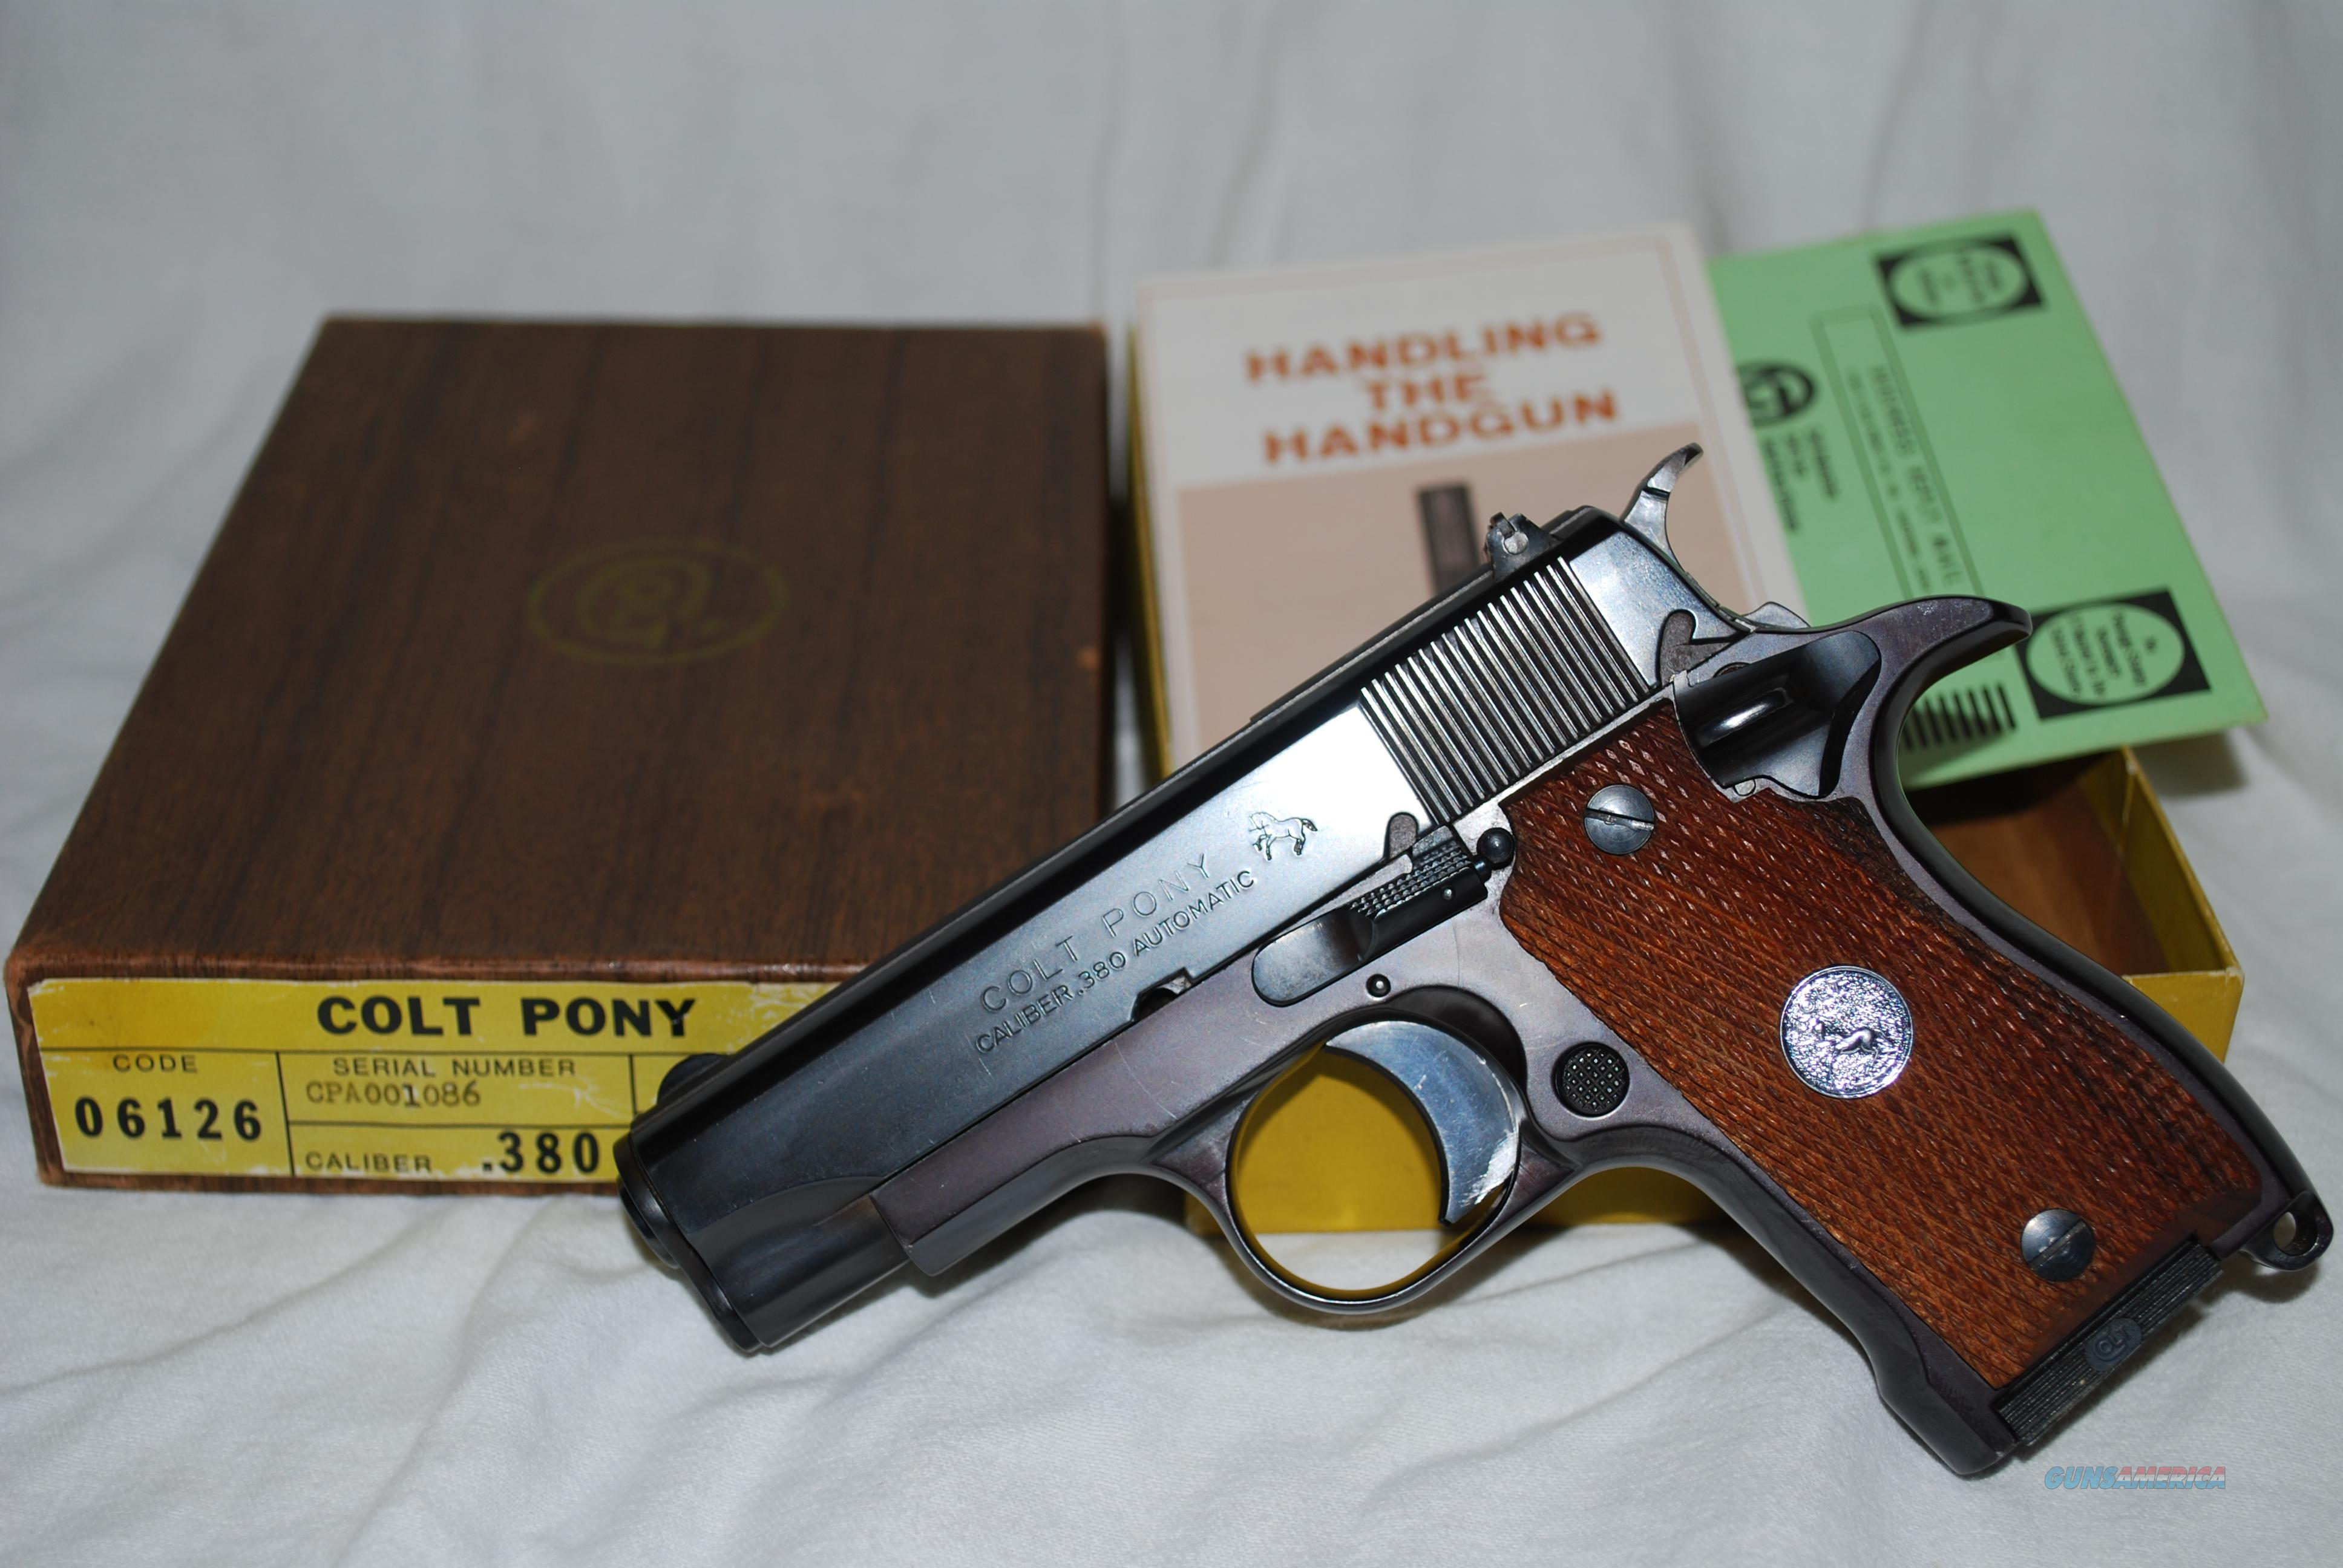 * PROTOTYPE * Colt PONY 380 ACP - ONLY 47 PRODUCED in 1973 *EXTREMELY RARE*